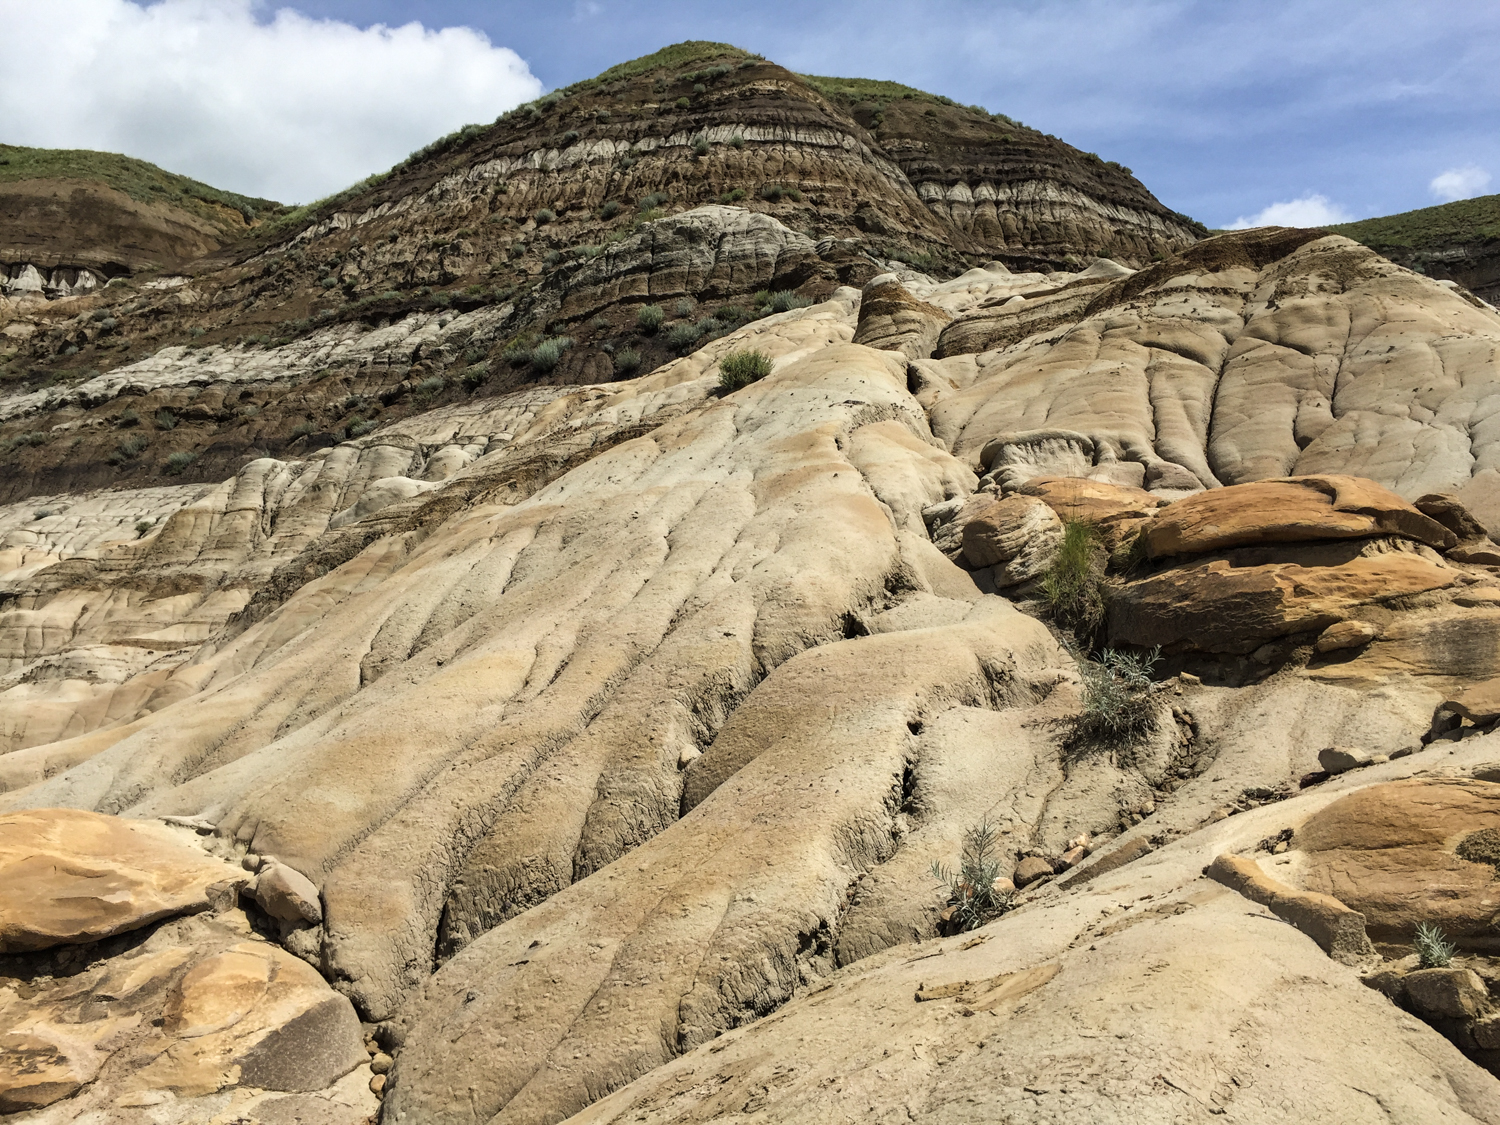 There's a lot of this kind of geological formation in the Red Deer River Valley in the east-central Alberta badlands